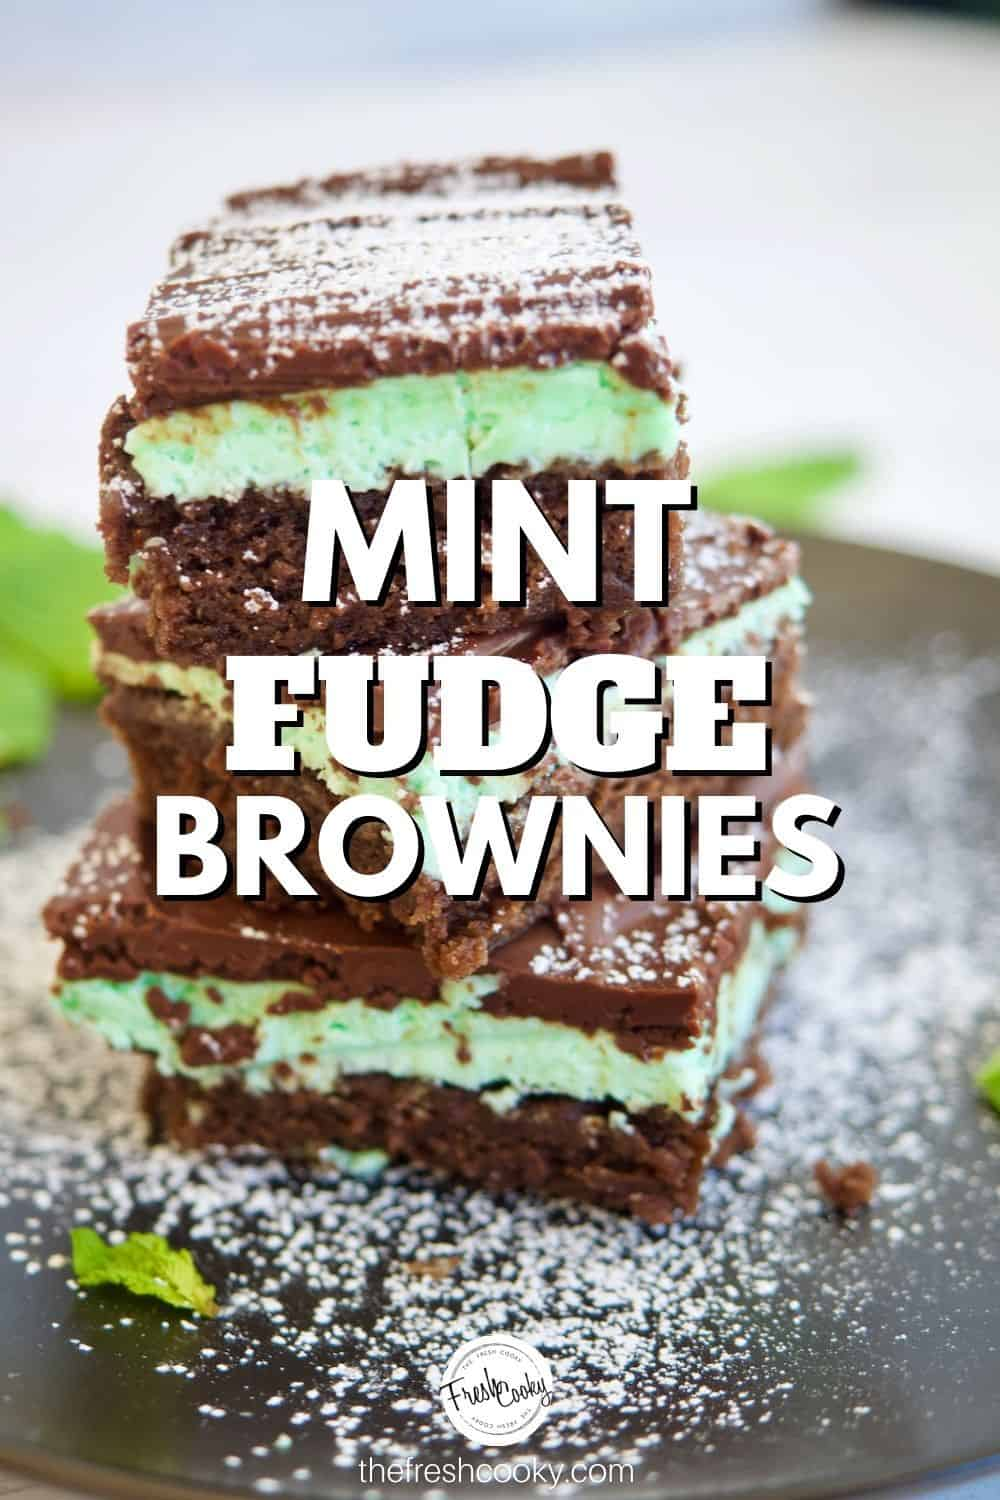 Triple layered Mint Brownies! Yes please! Fudge brownie layer, fluffy minty creme de menthe buttercream middle with a rich chocolate ganache top! The perfect Christmas cookie, bar cookie. Makes a lot! High altitude instructions included. #thefreshcooky #grasshopper #fudgemintbrownies #holidaybakingrecipes via @thefreshcooky